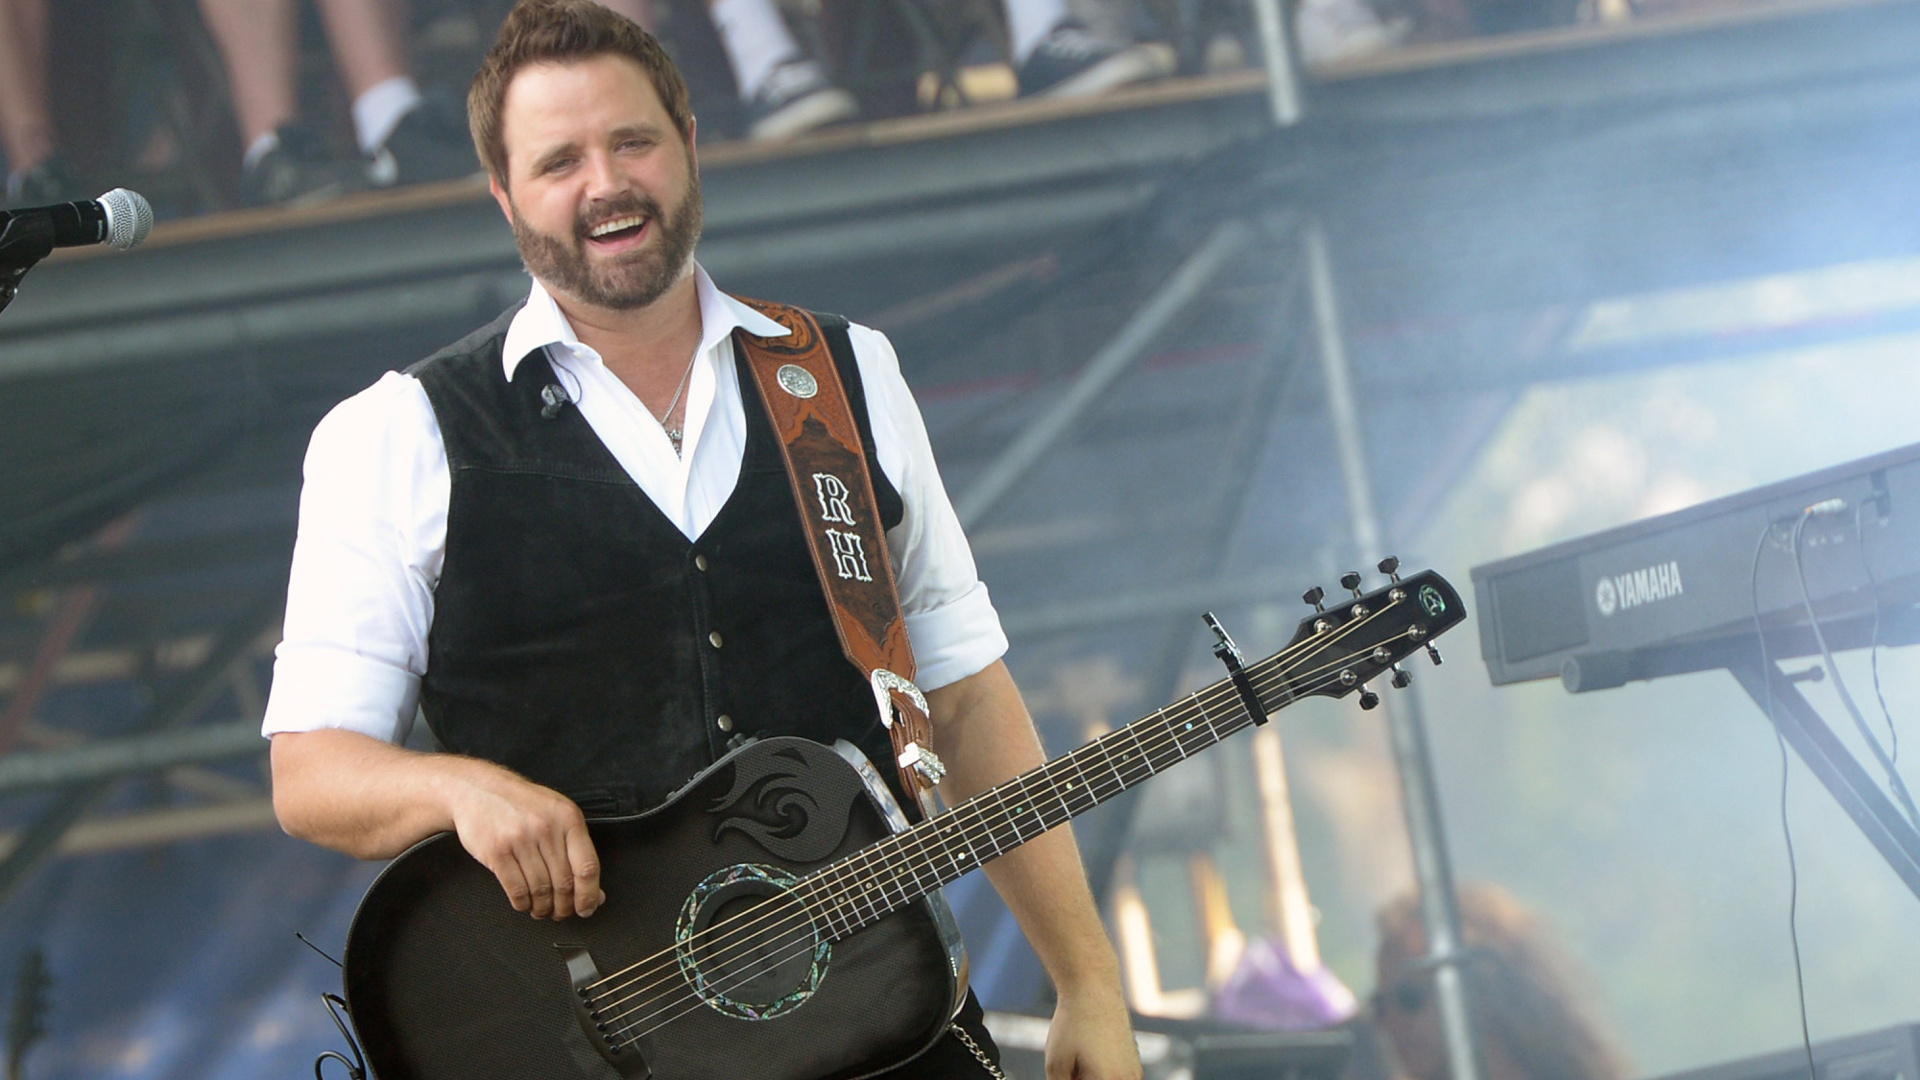 Shine av Randy Houser